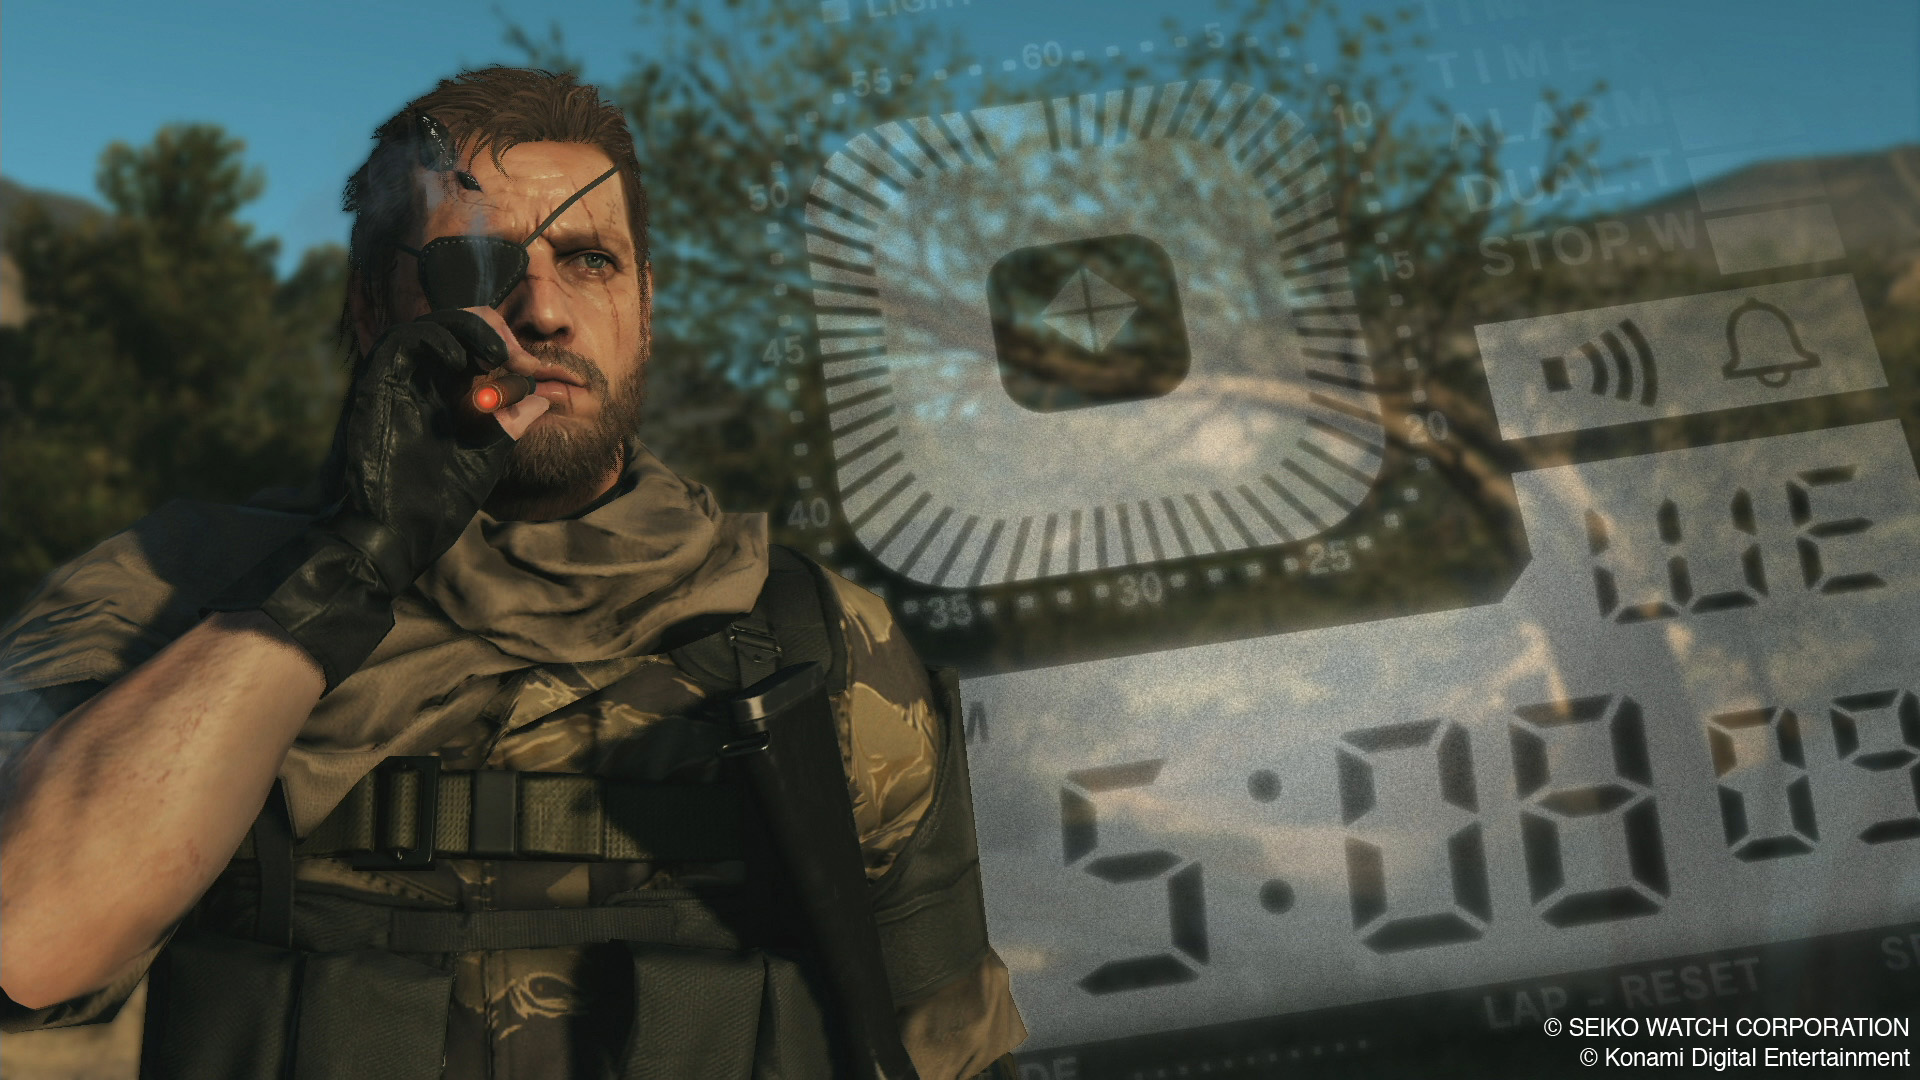 Confirmado: Metal Gear Solid V llegará a PC [OMFG!!!]